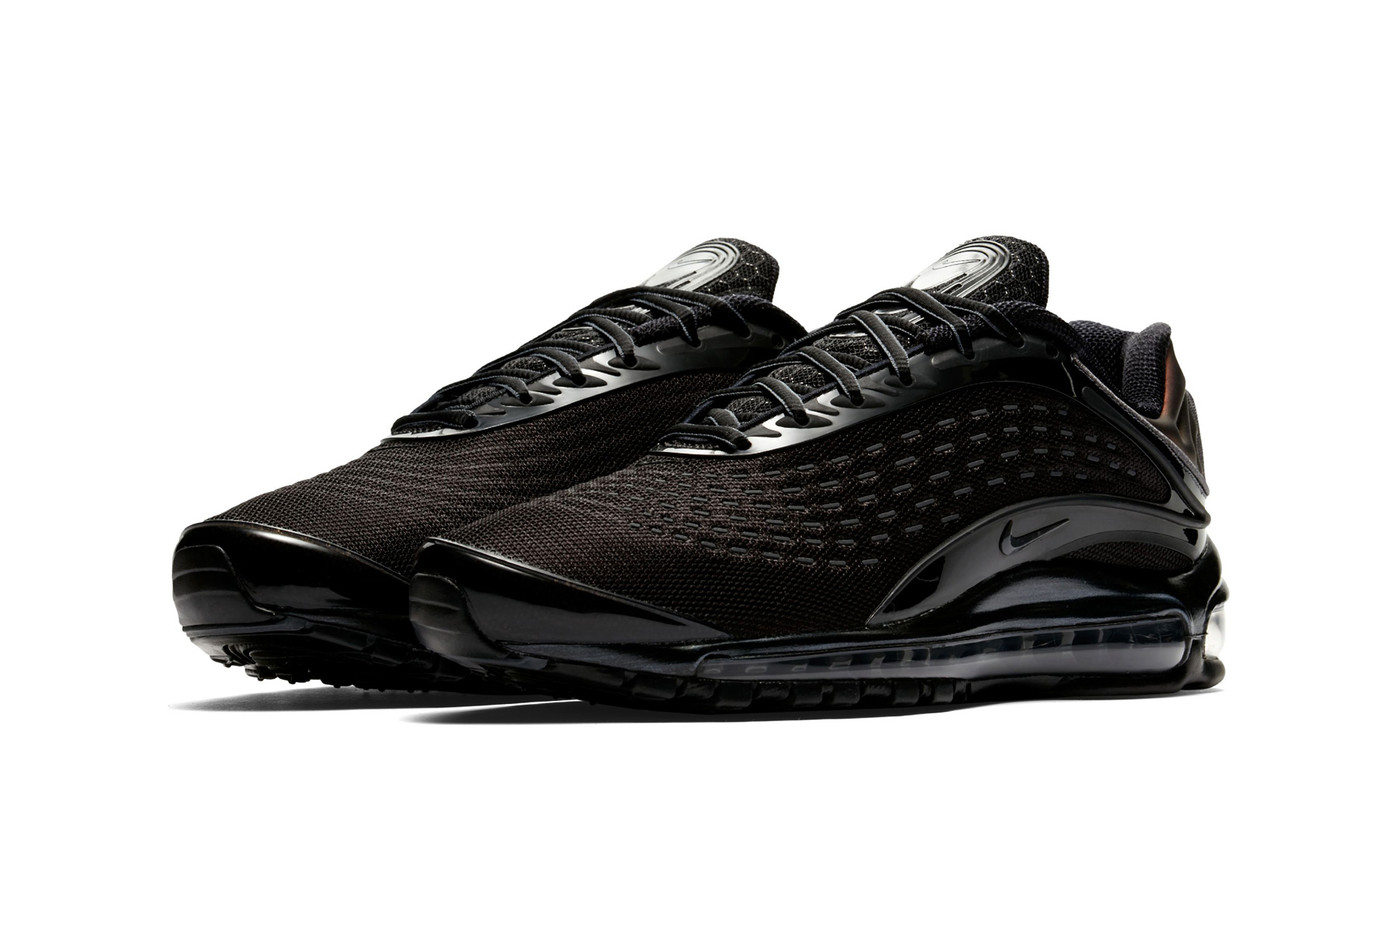 Nike Air Max Deluxe Black Bronze | AV2589-001